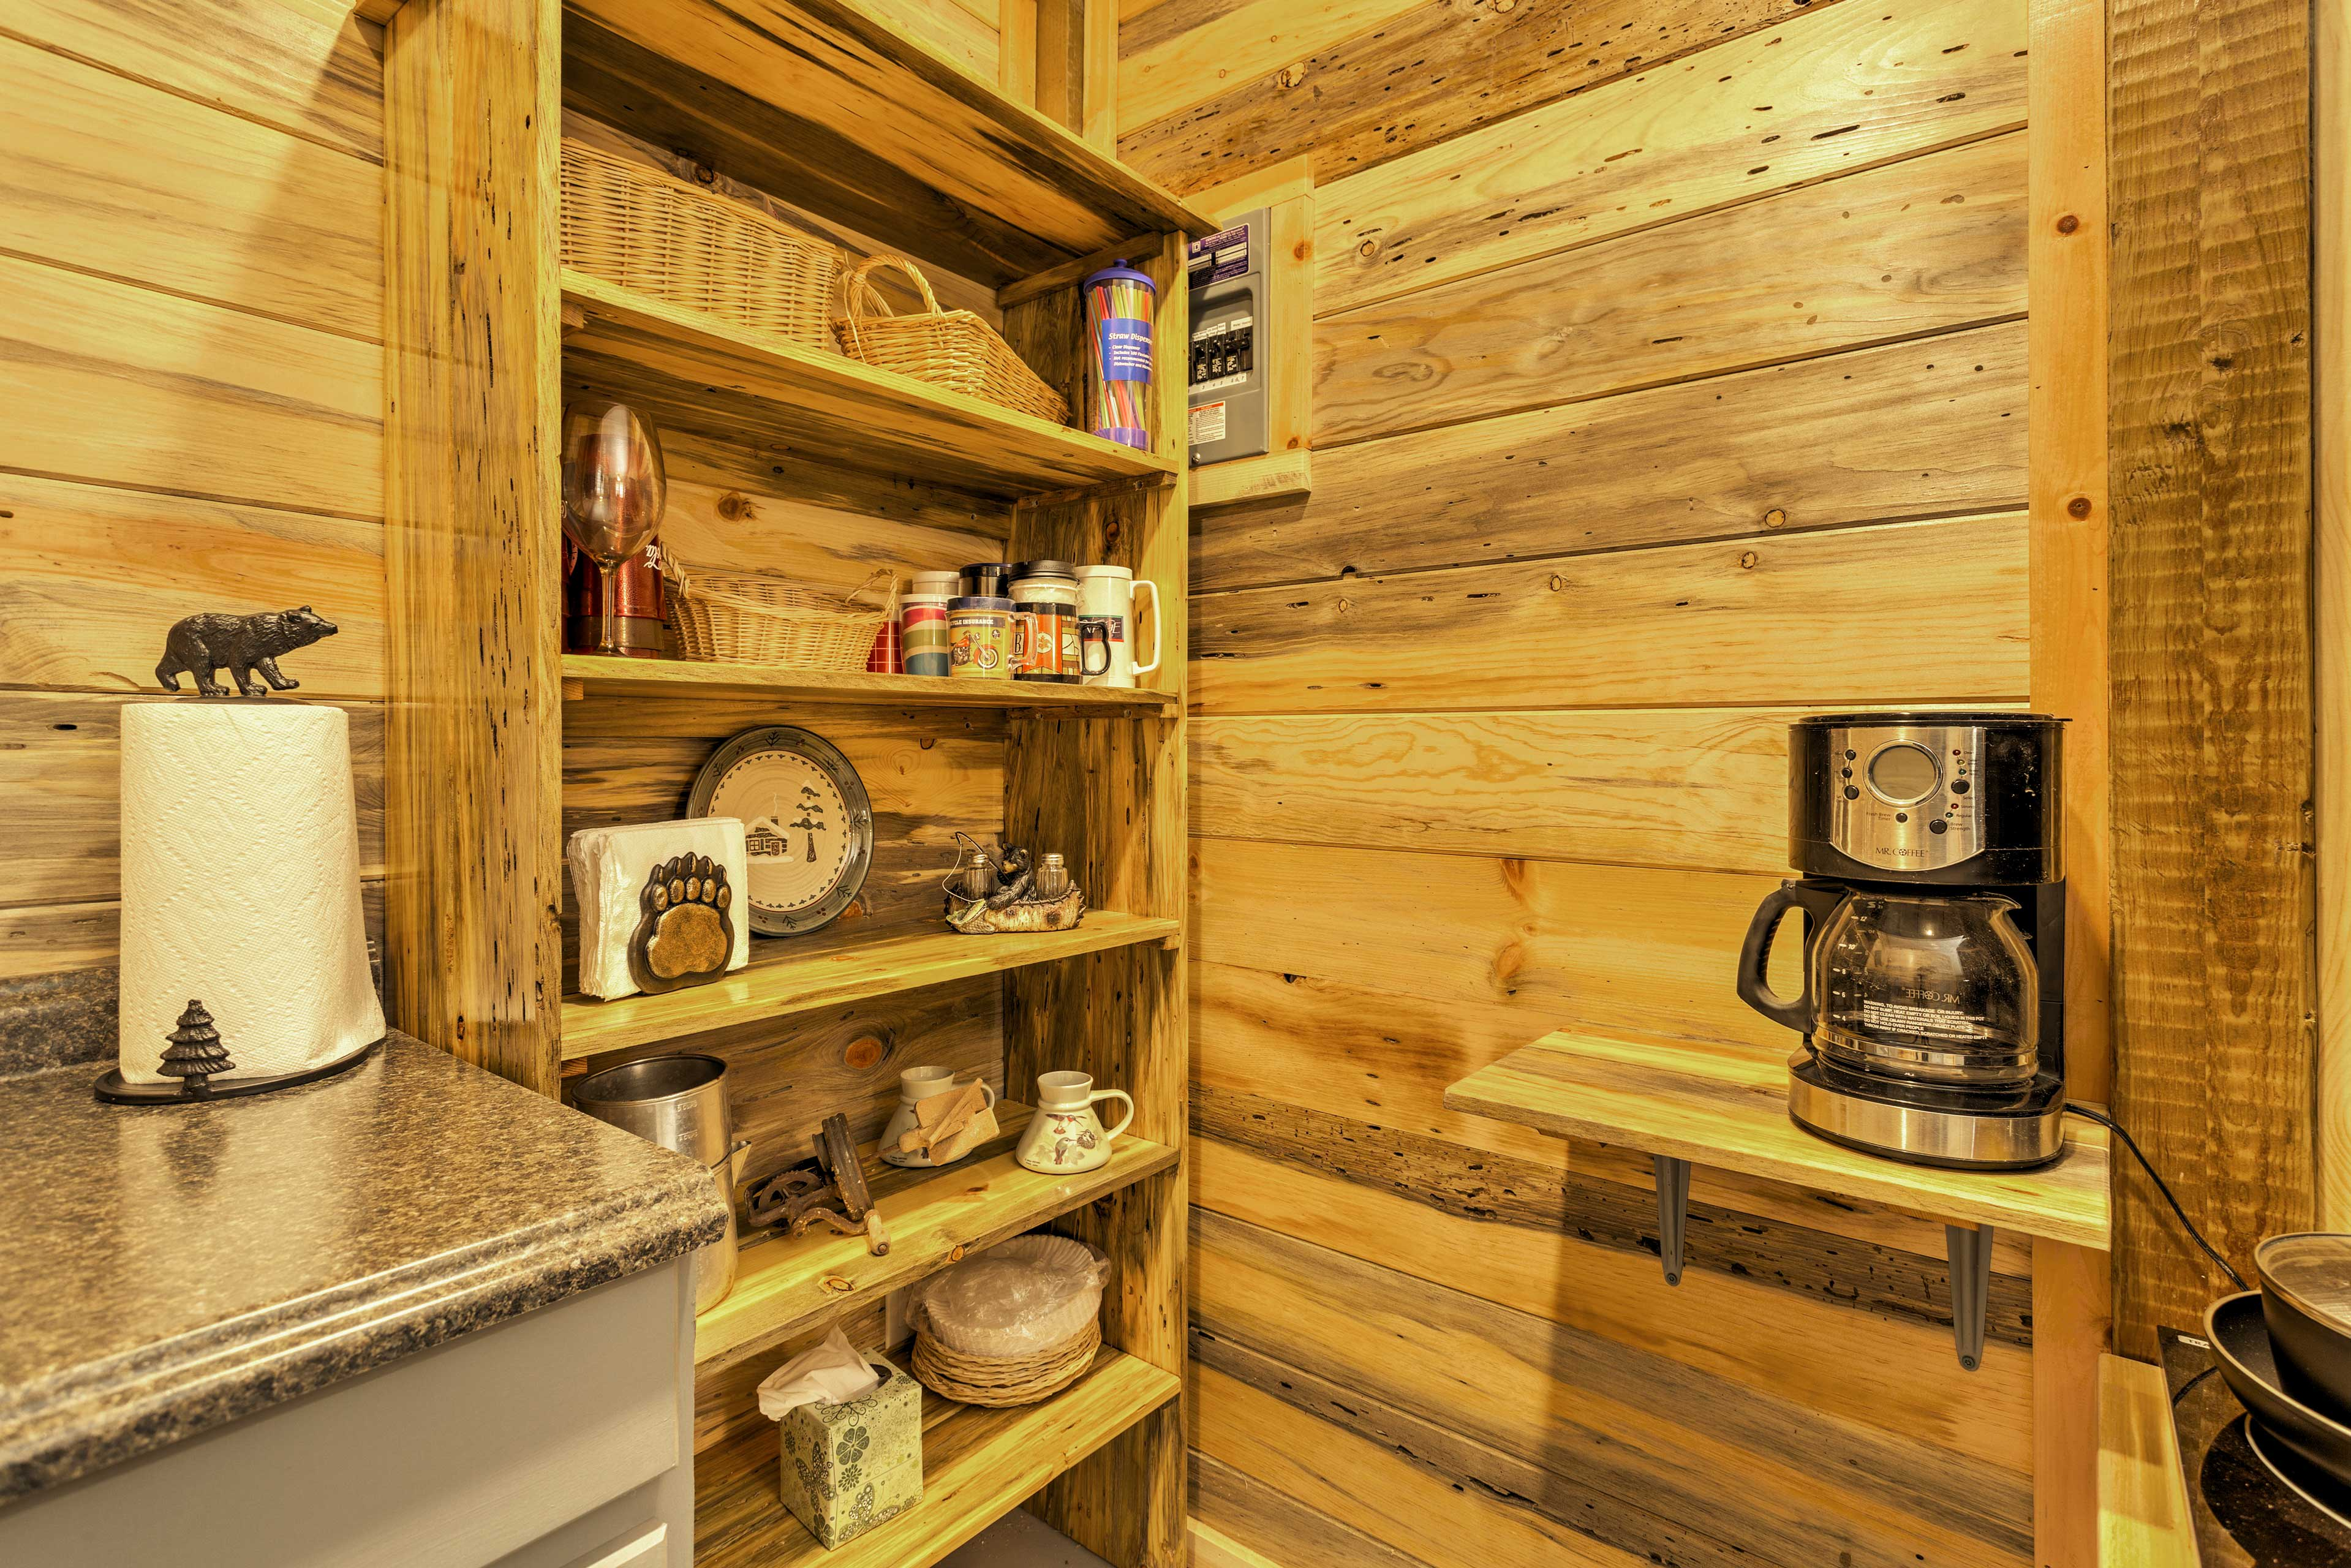 Prepare tasty snacks and meals for the group in the kitchenette.